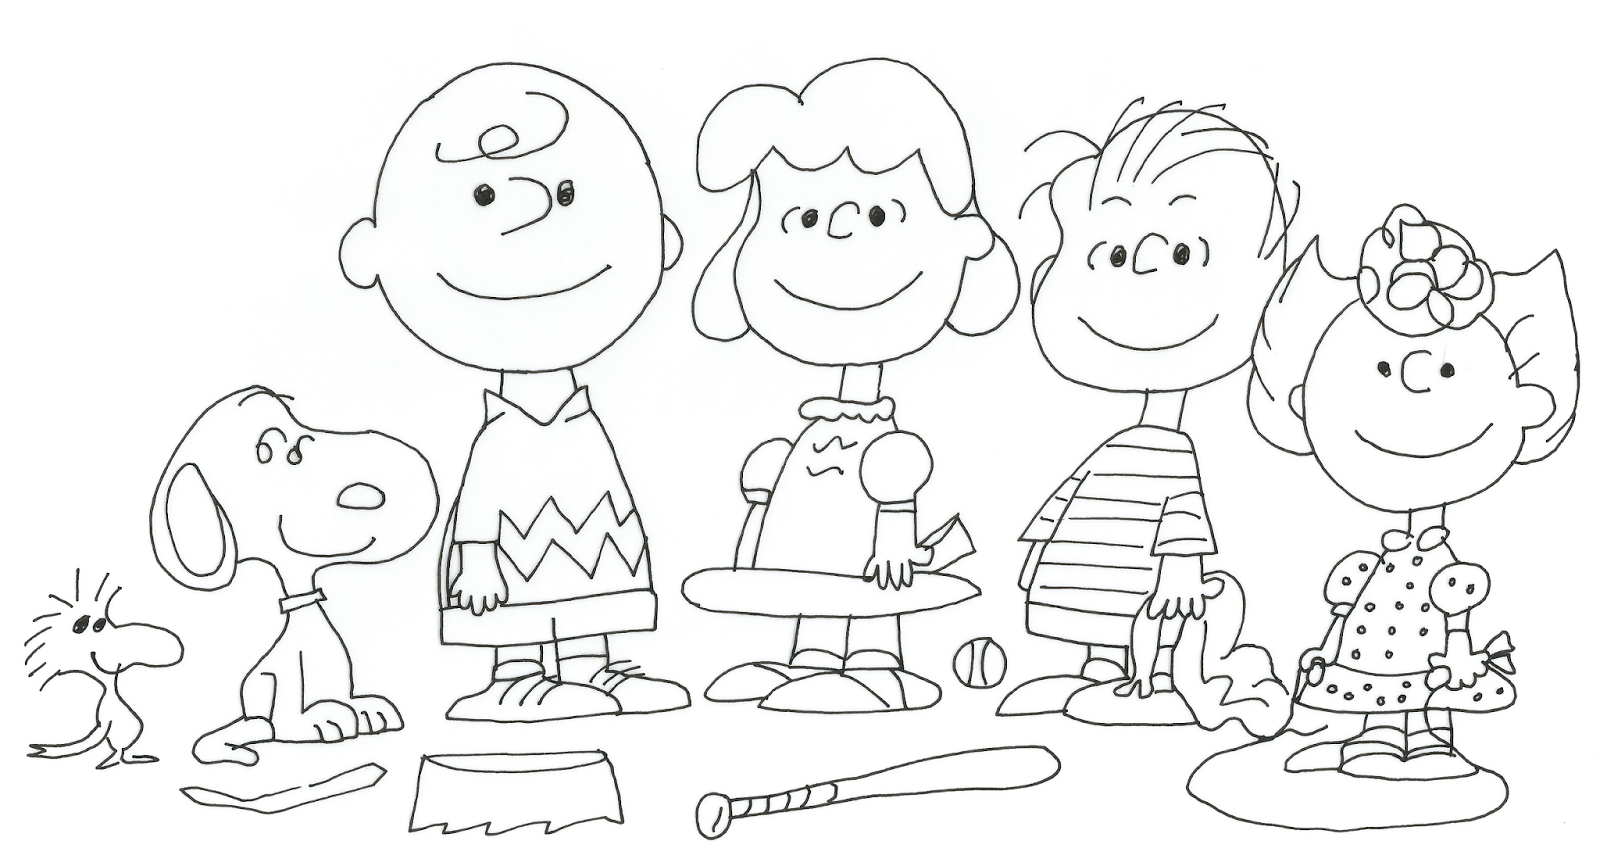 Snoopy And Woodstock Coloring Pages Free Charlie Brown Snoopy And Peanuts Coloring Pages Baseball Game